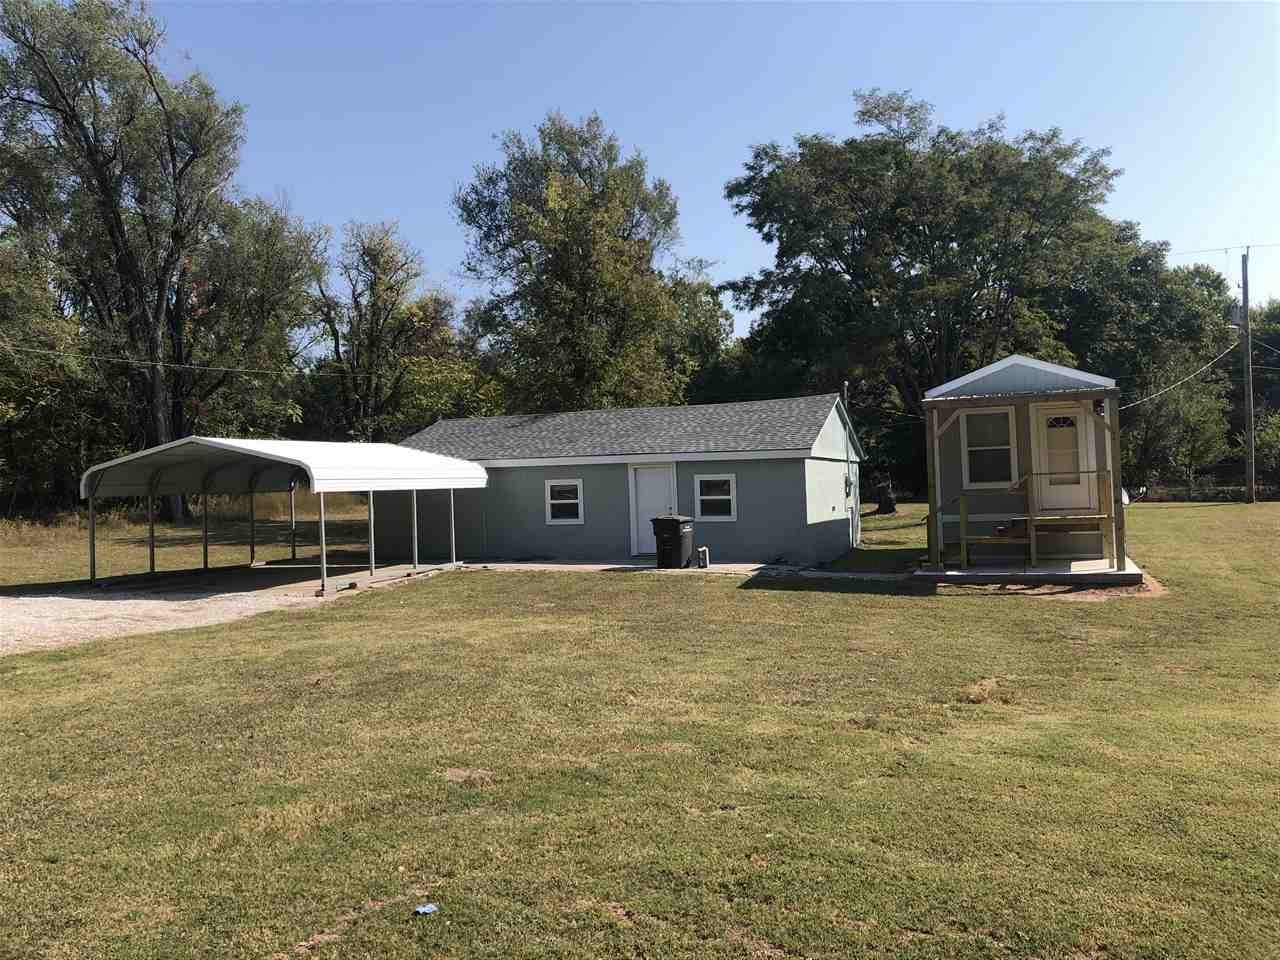 If you are looking to simplify your life in a peaceful neighborhood with a huge yard than this is the is the property for you. This 1 bedroom and 1 bathroom home is just what you are looking for. This house was built in 2019 and sits on over half of an acre with a 26x36 finished shop that is fully insulated, heated and cooled  with a new roof it is a great place for year around projects. The yard is big enough for a huge garden and additional shops. SELLER IS WILLING TO PAY BUYERS CLOSING COST UPON AN ACCEPTABLE OFFER. Call today to schedule your private showing!